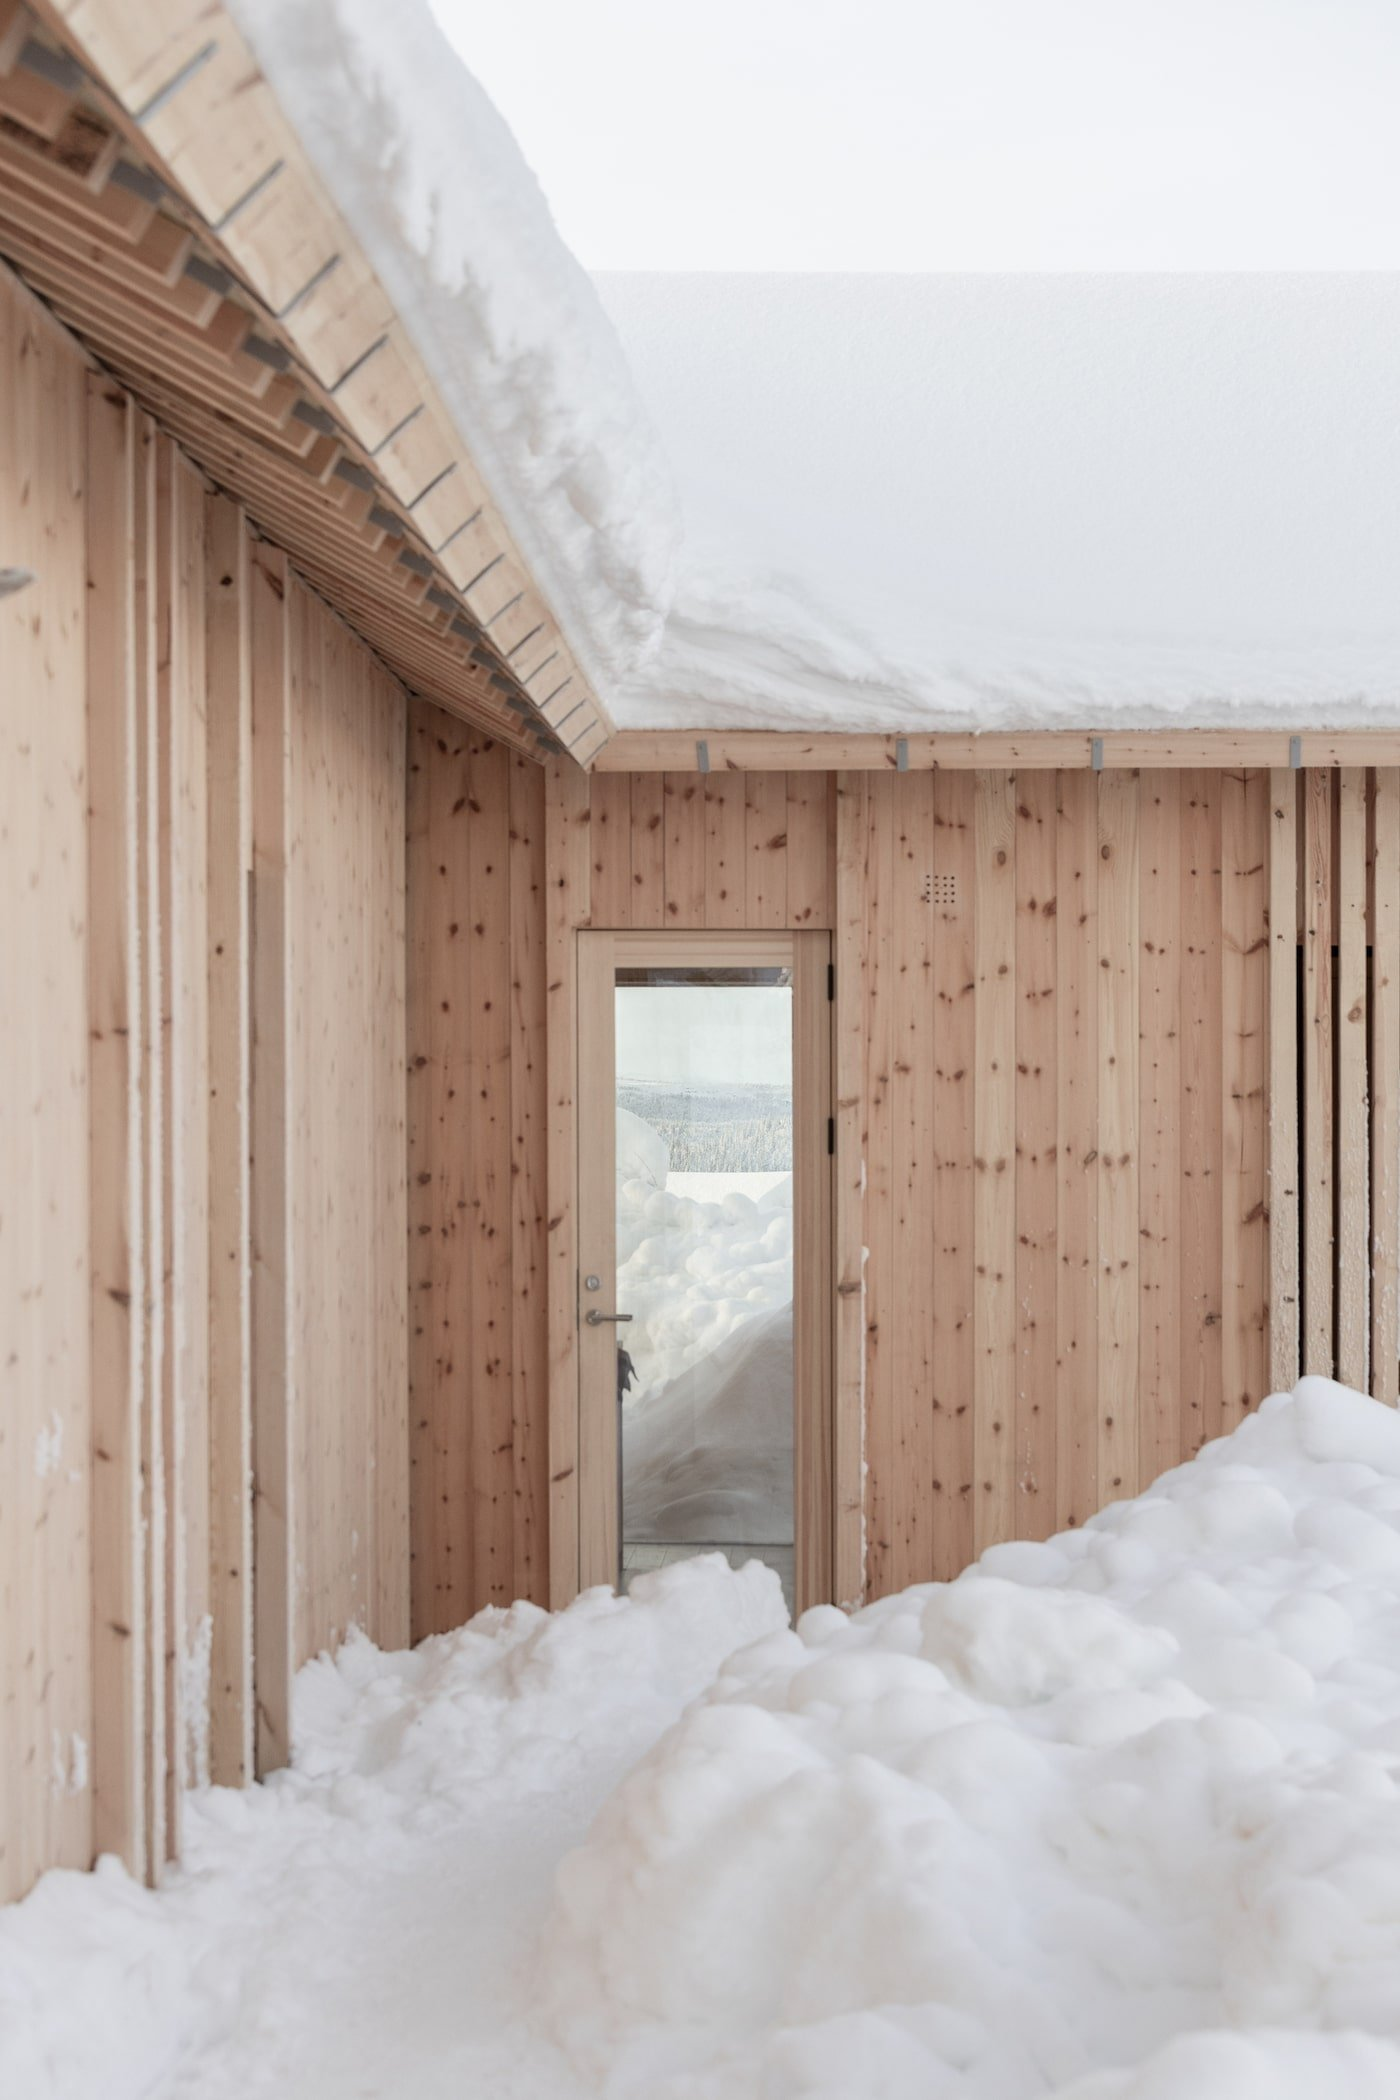 Snow piled up in front of door of all timber Kvitfjell Cabin